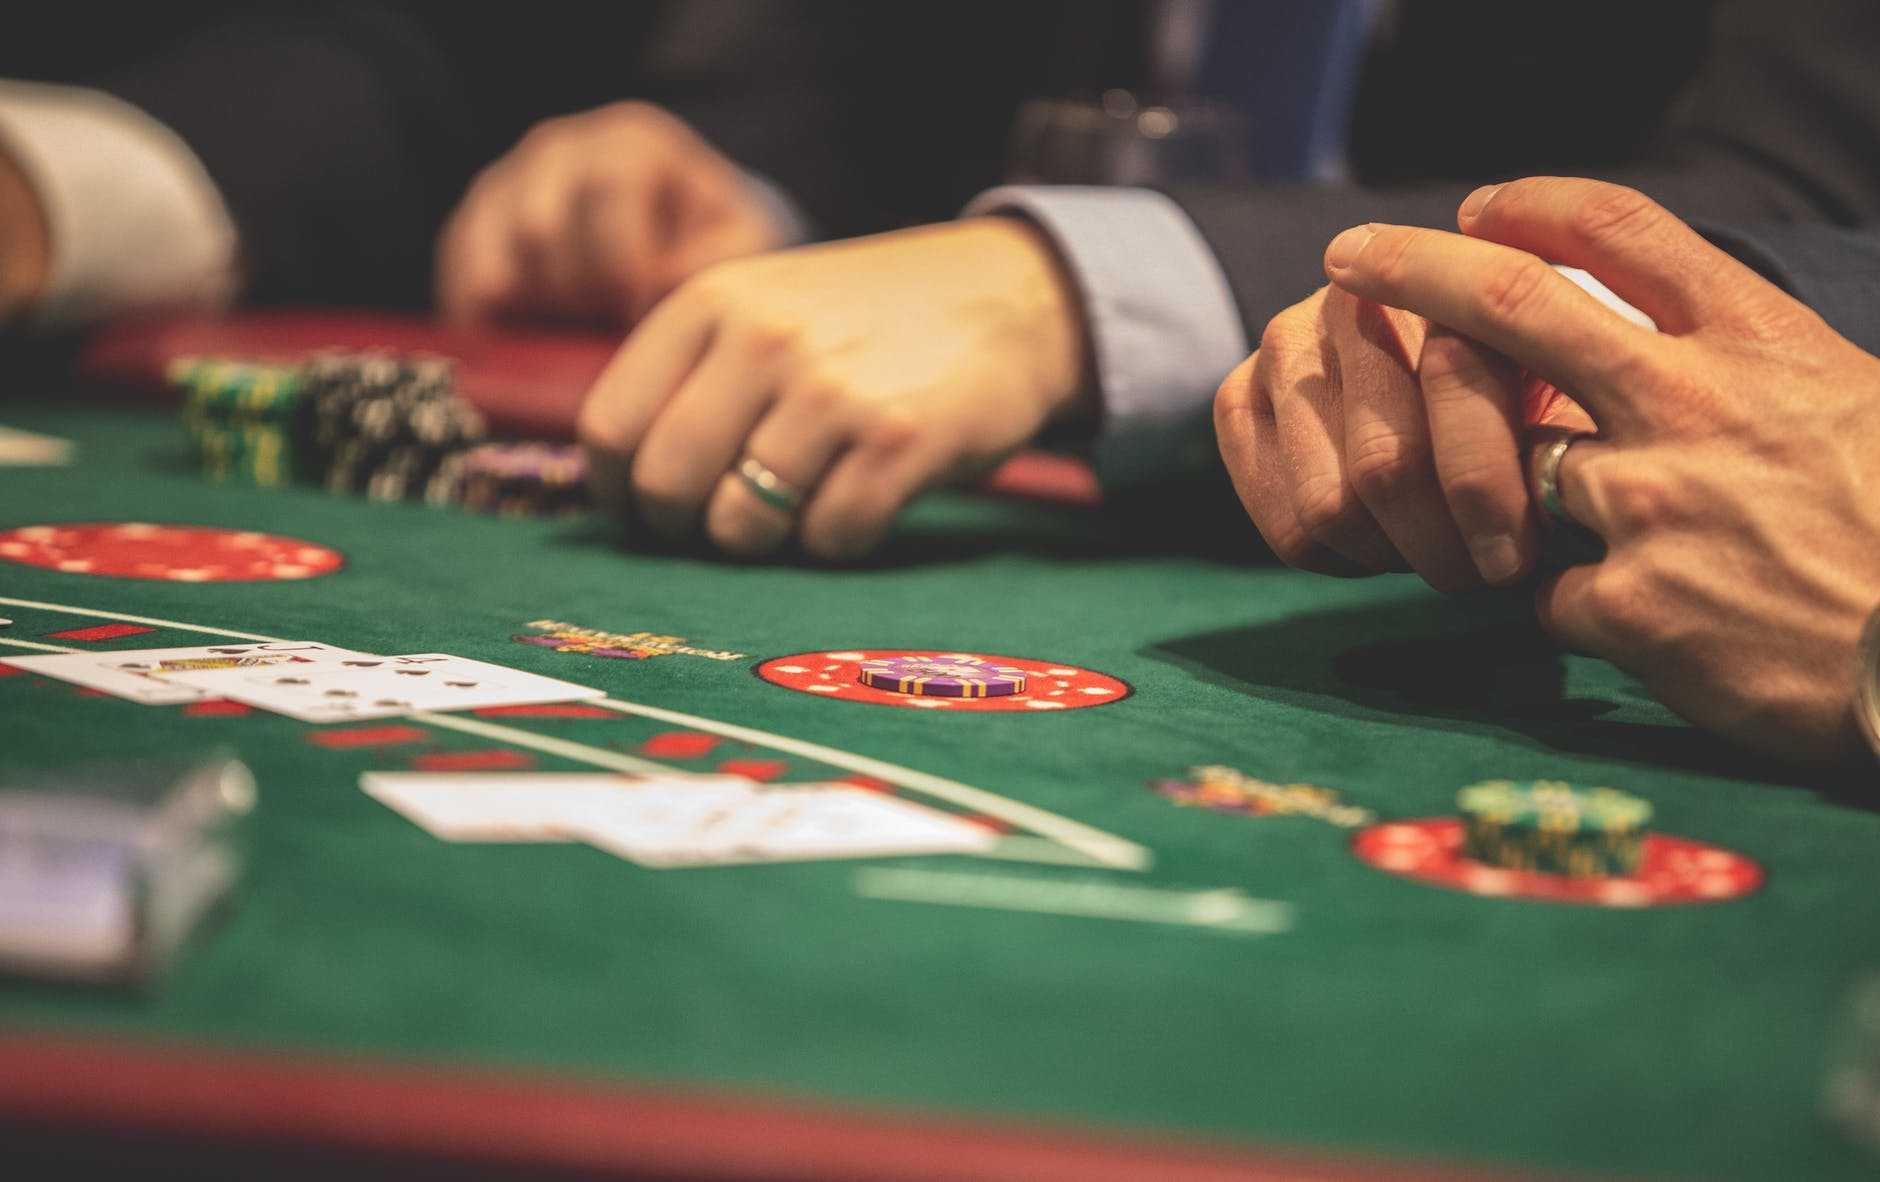 PostImage Expand your knowledge with the casino industry people hands on casino tables - 3 Reasons Why Gambling Industry Managers Should Attend Casino Gaming Events